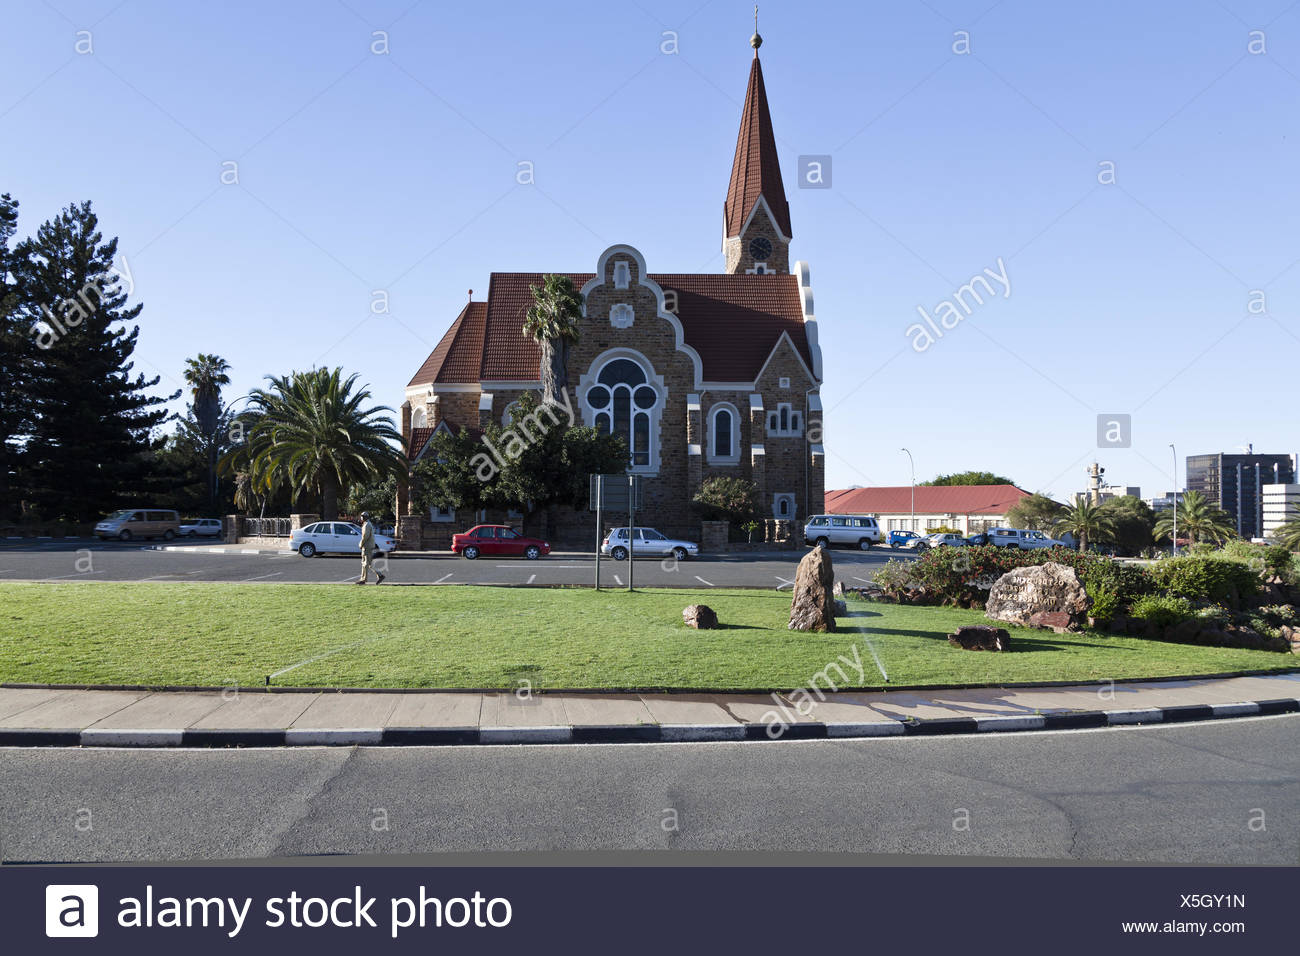 The christus church in Windhoek - Stock Image